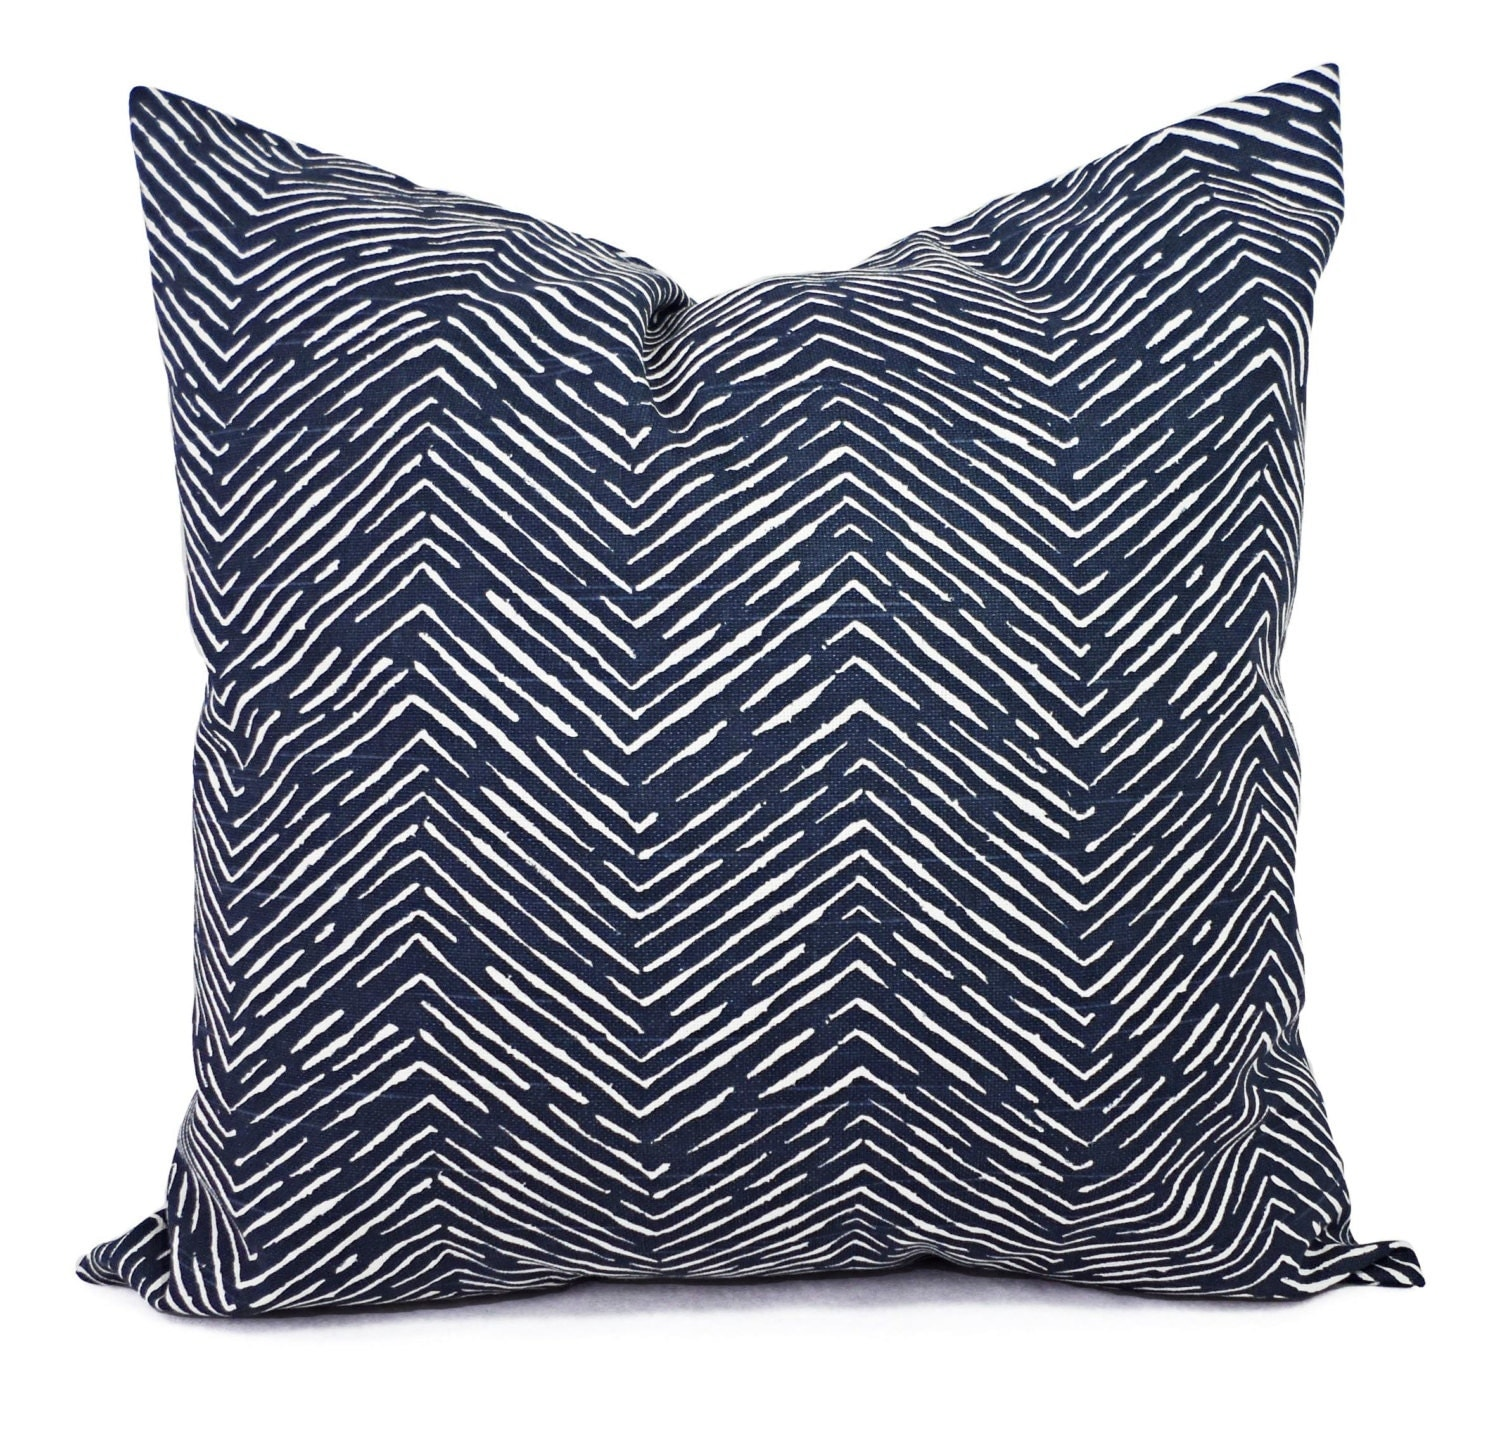 Throw Pillows With Covers : Blue Decorative Pillow Covers Two Navy Chevron Throw Pillow